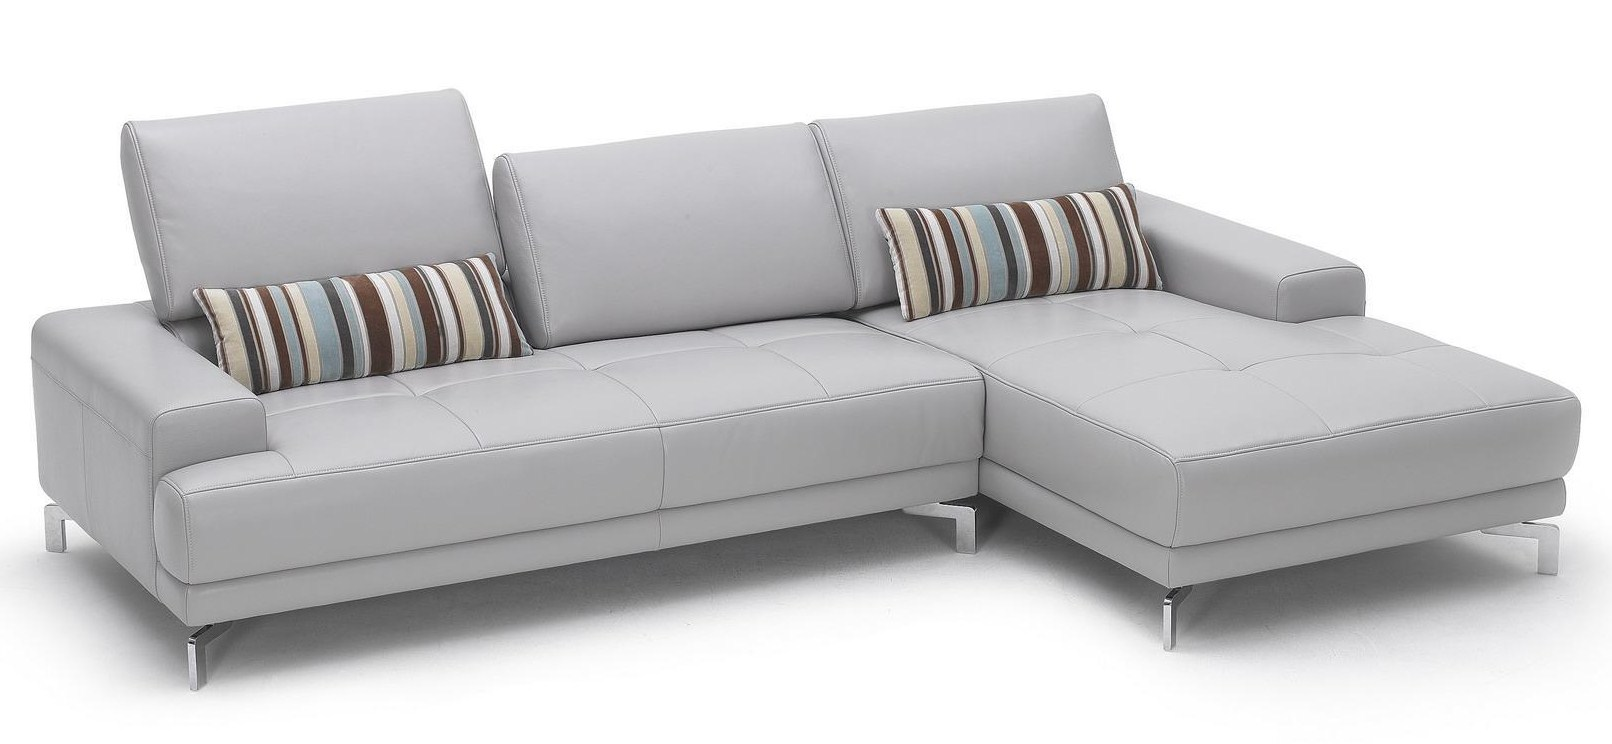 Modern sofa white 1329 1 new york for Contemporary couches